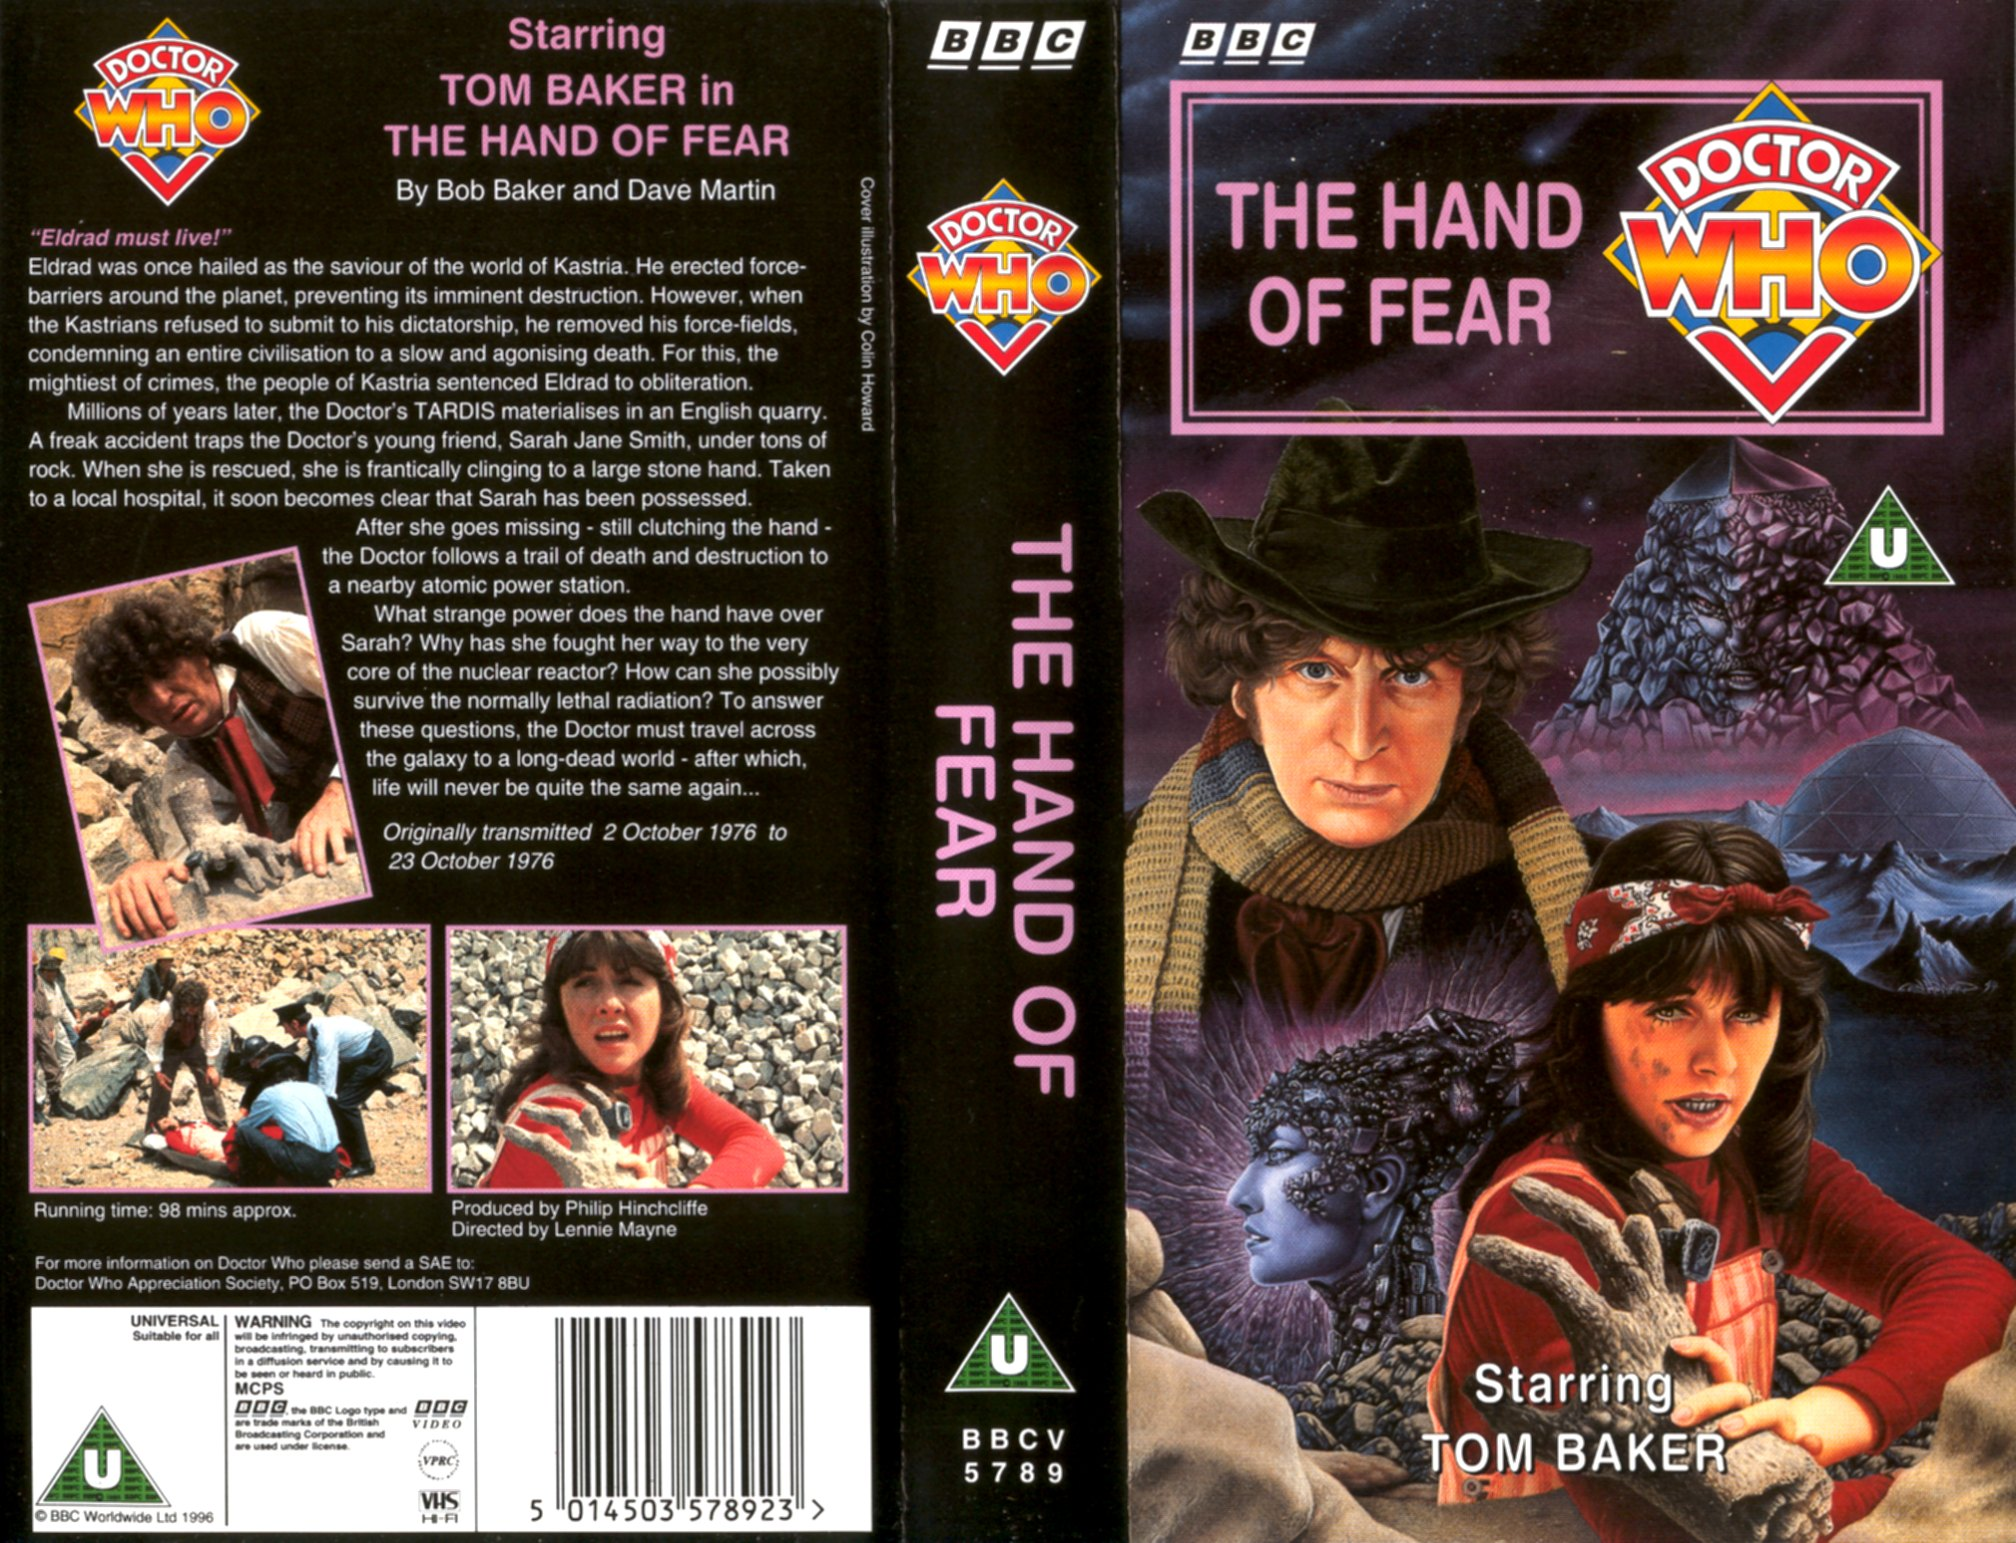 The Hand Of Fear VHS